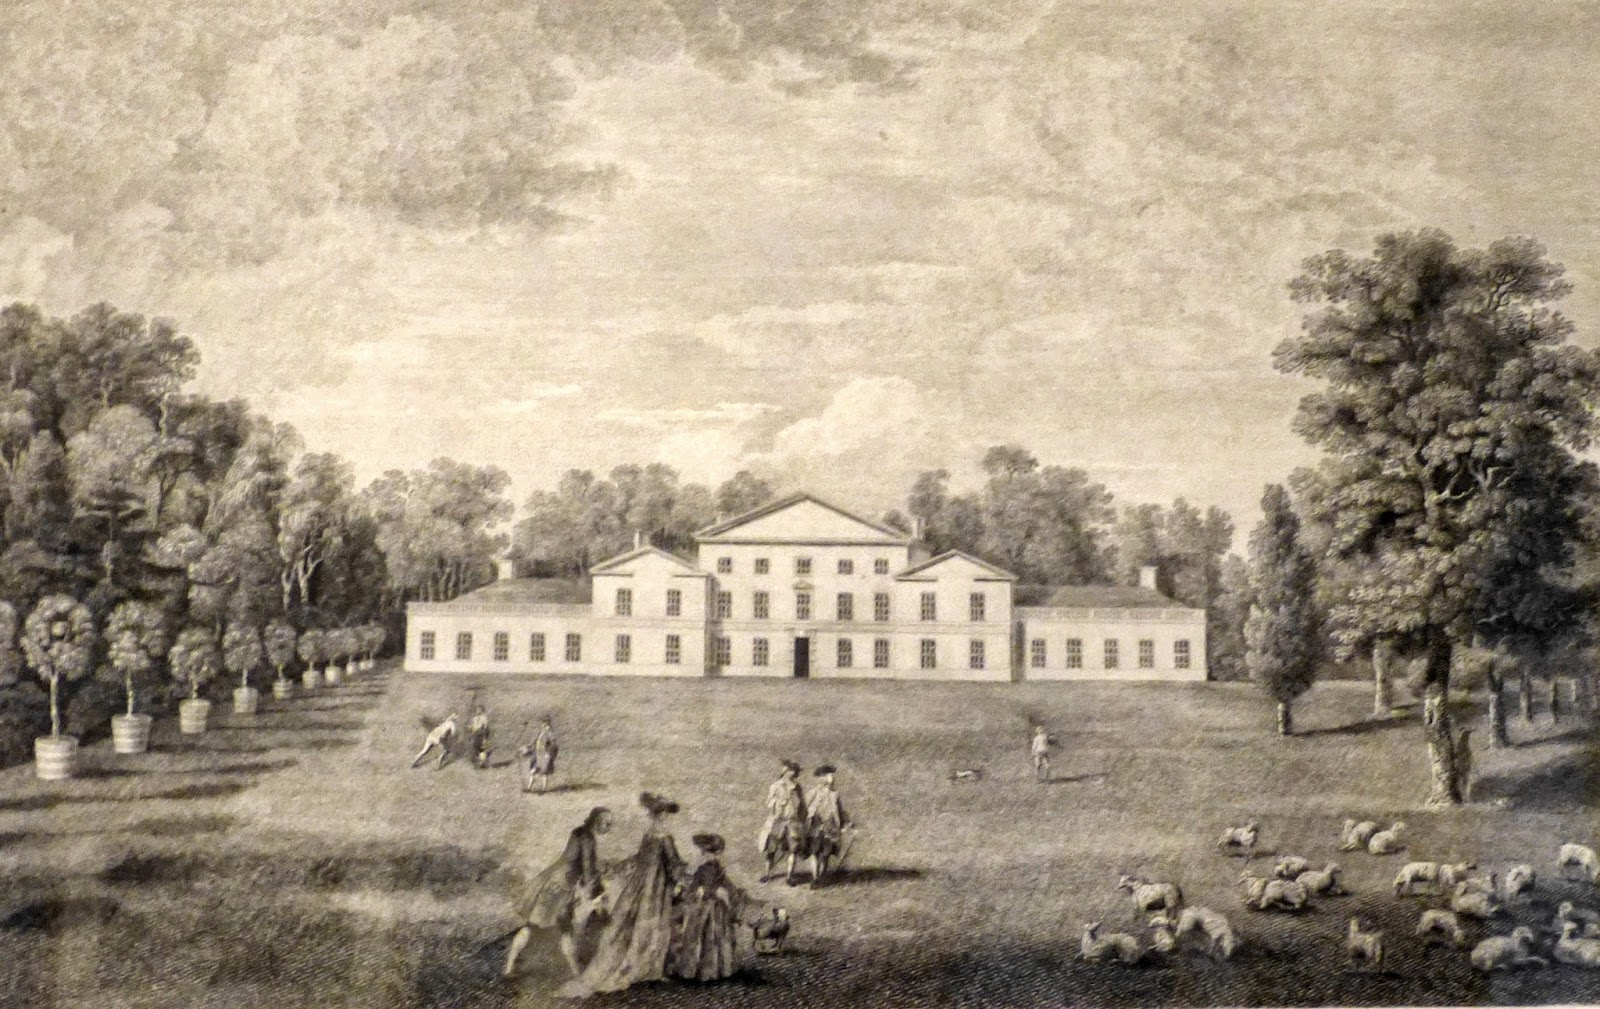 A view of the Palace form the Lawn in the Royal Gardens at Kew  by William Elliott after William Woollett (1763)